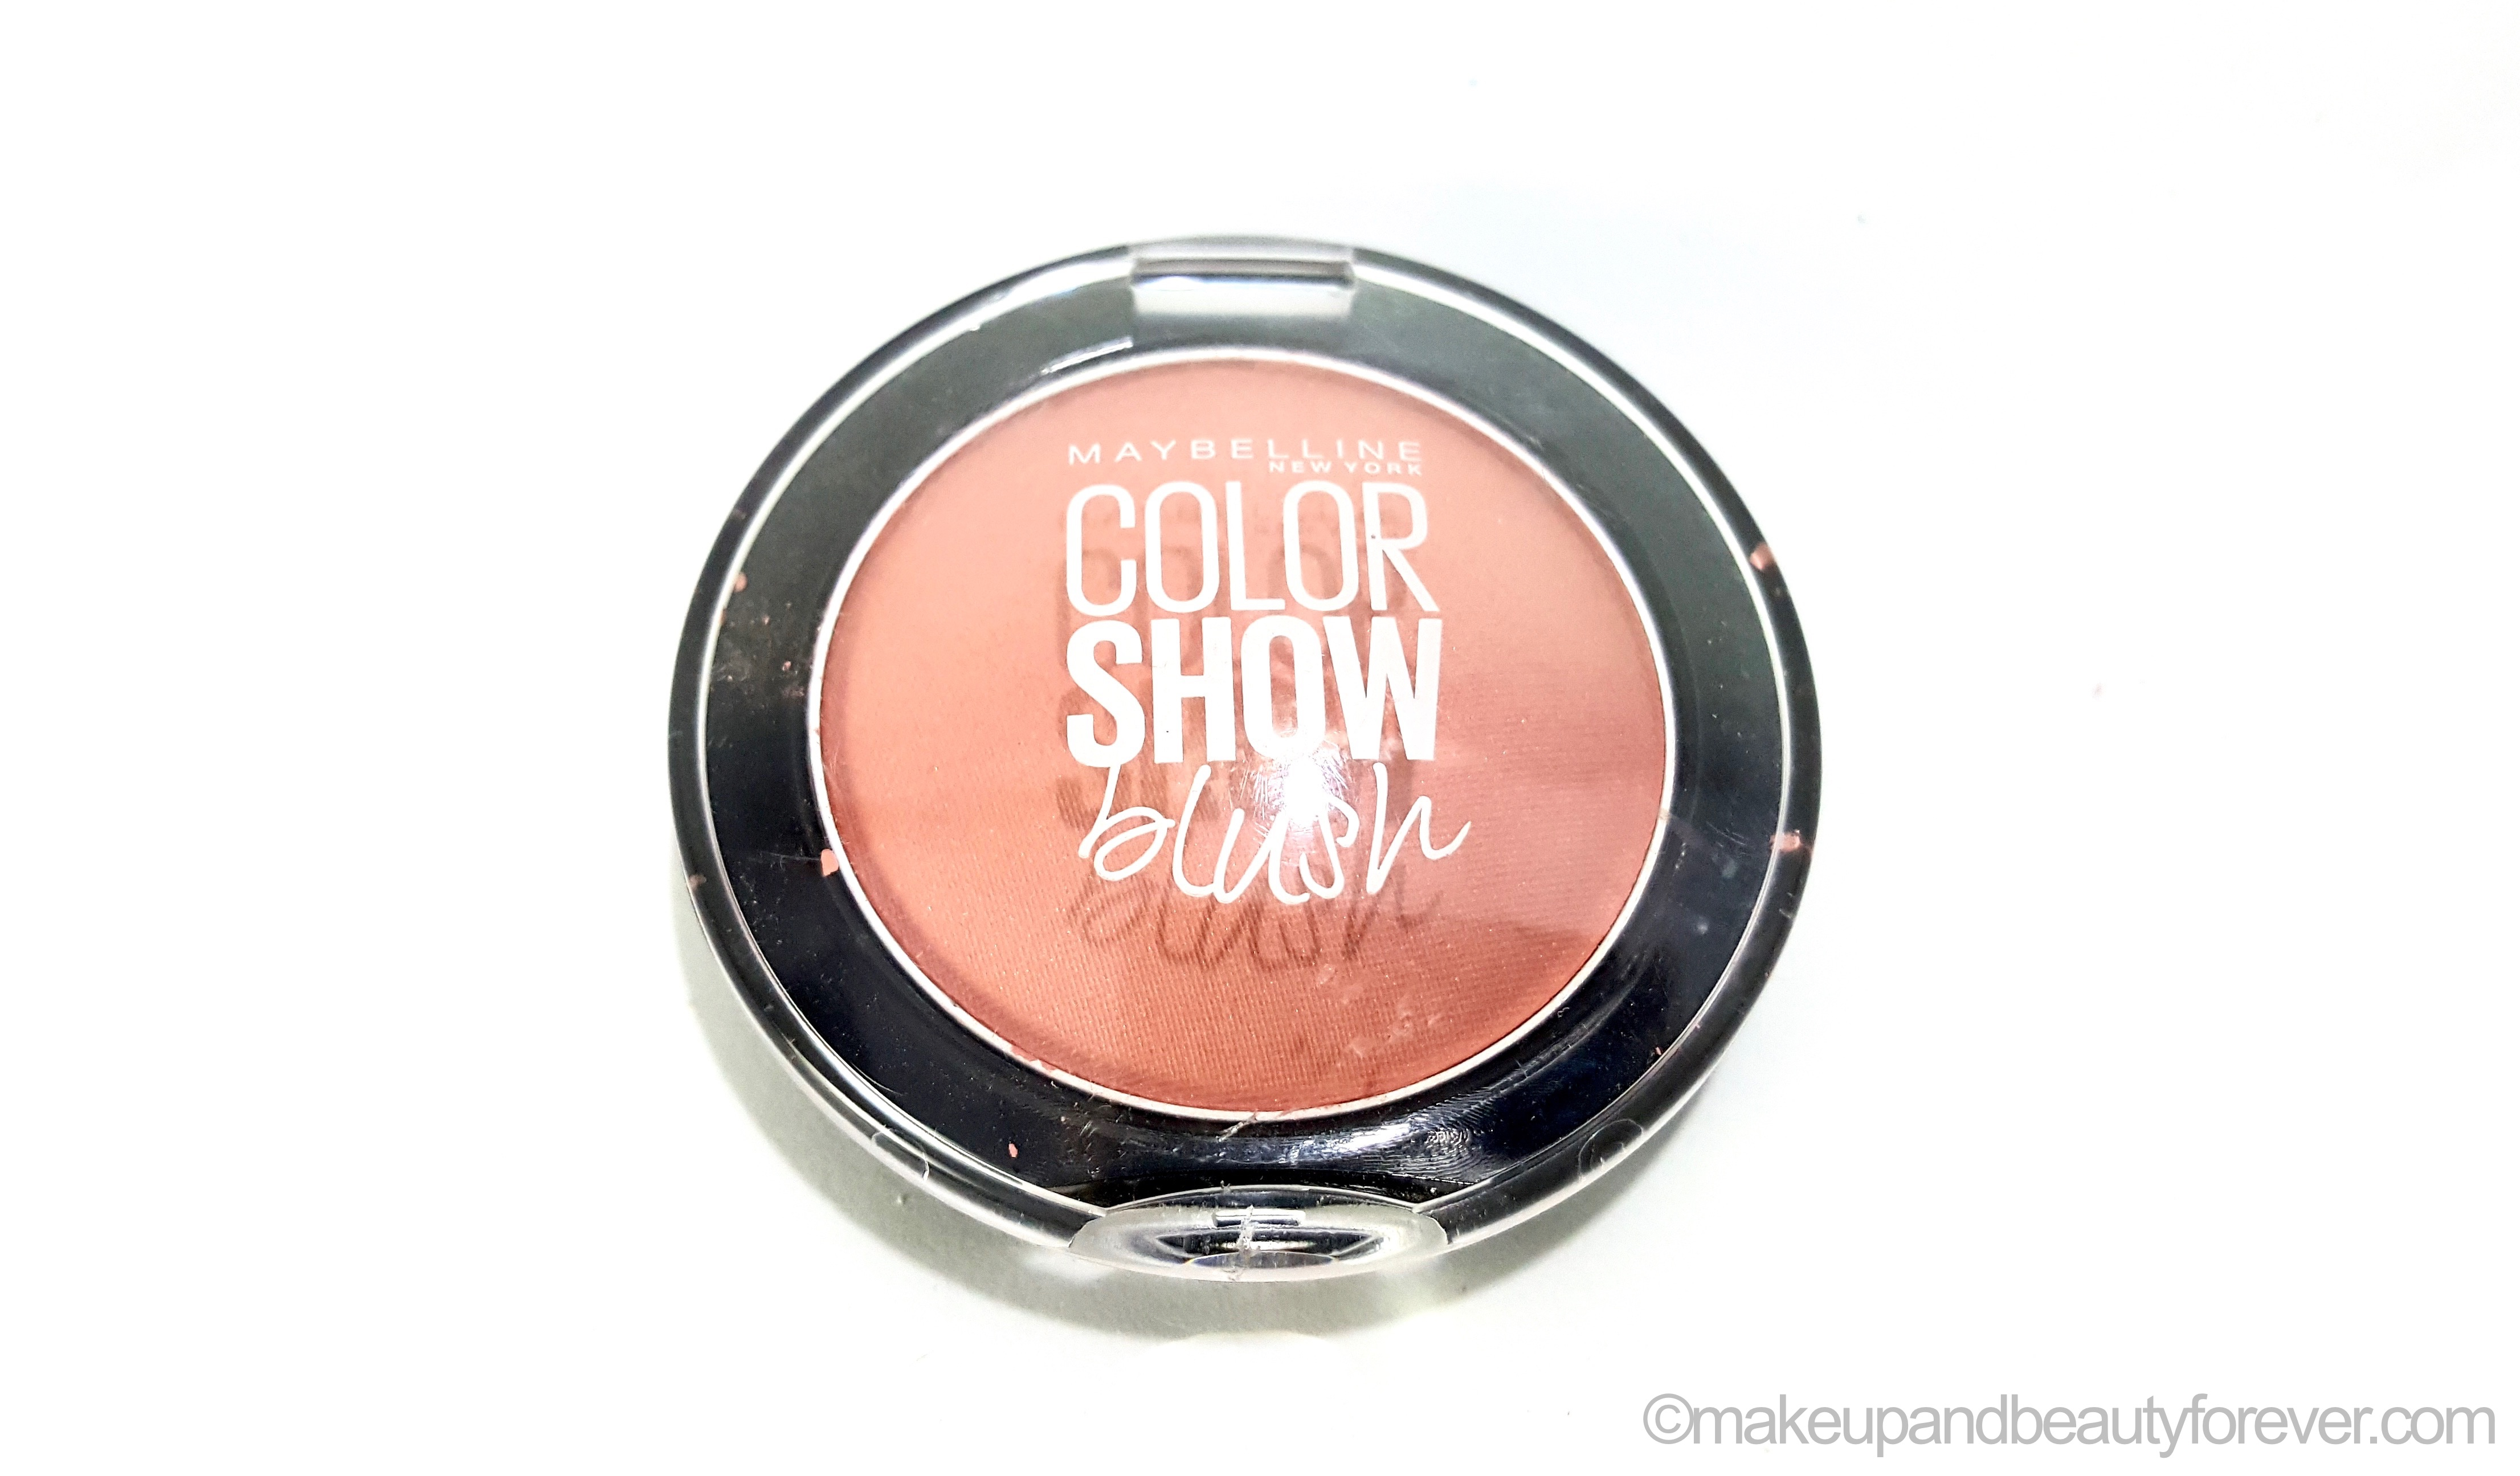 maybelline color show blush creamy cinnamon review swatches. Black Bedroom Furniture Sets. Home Design Ideas